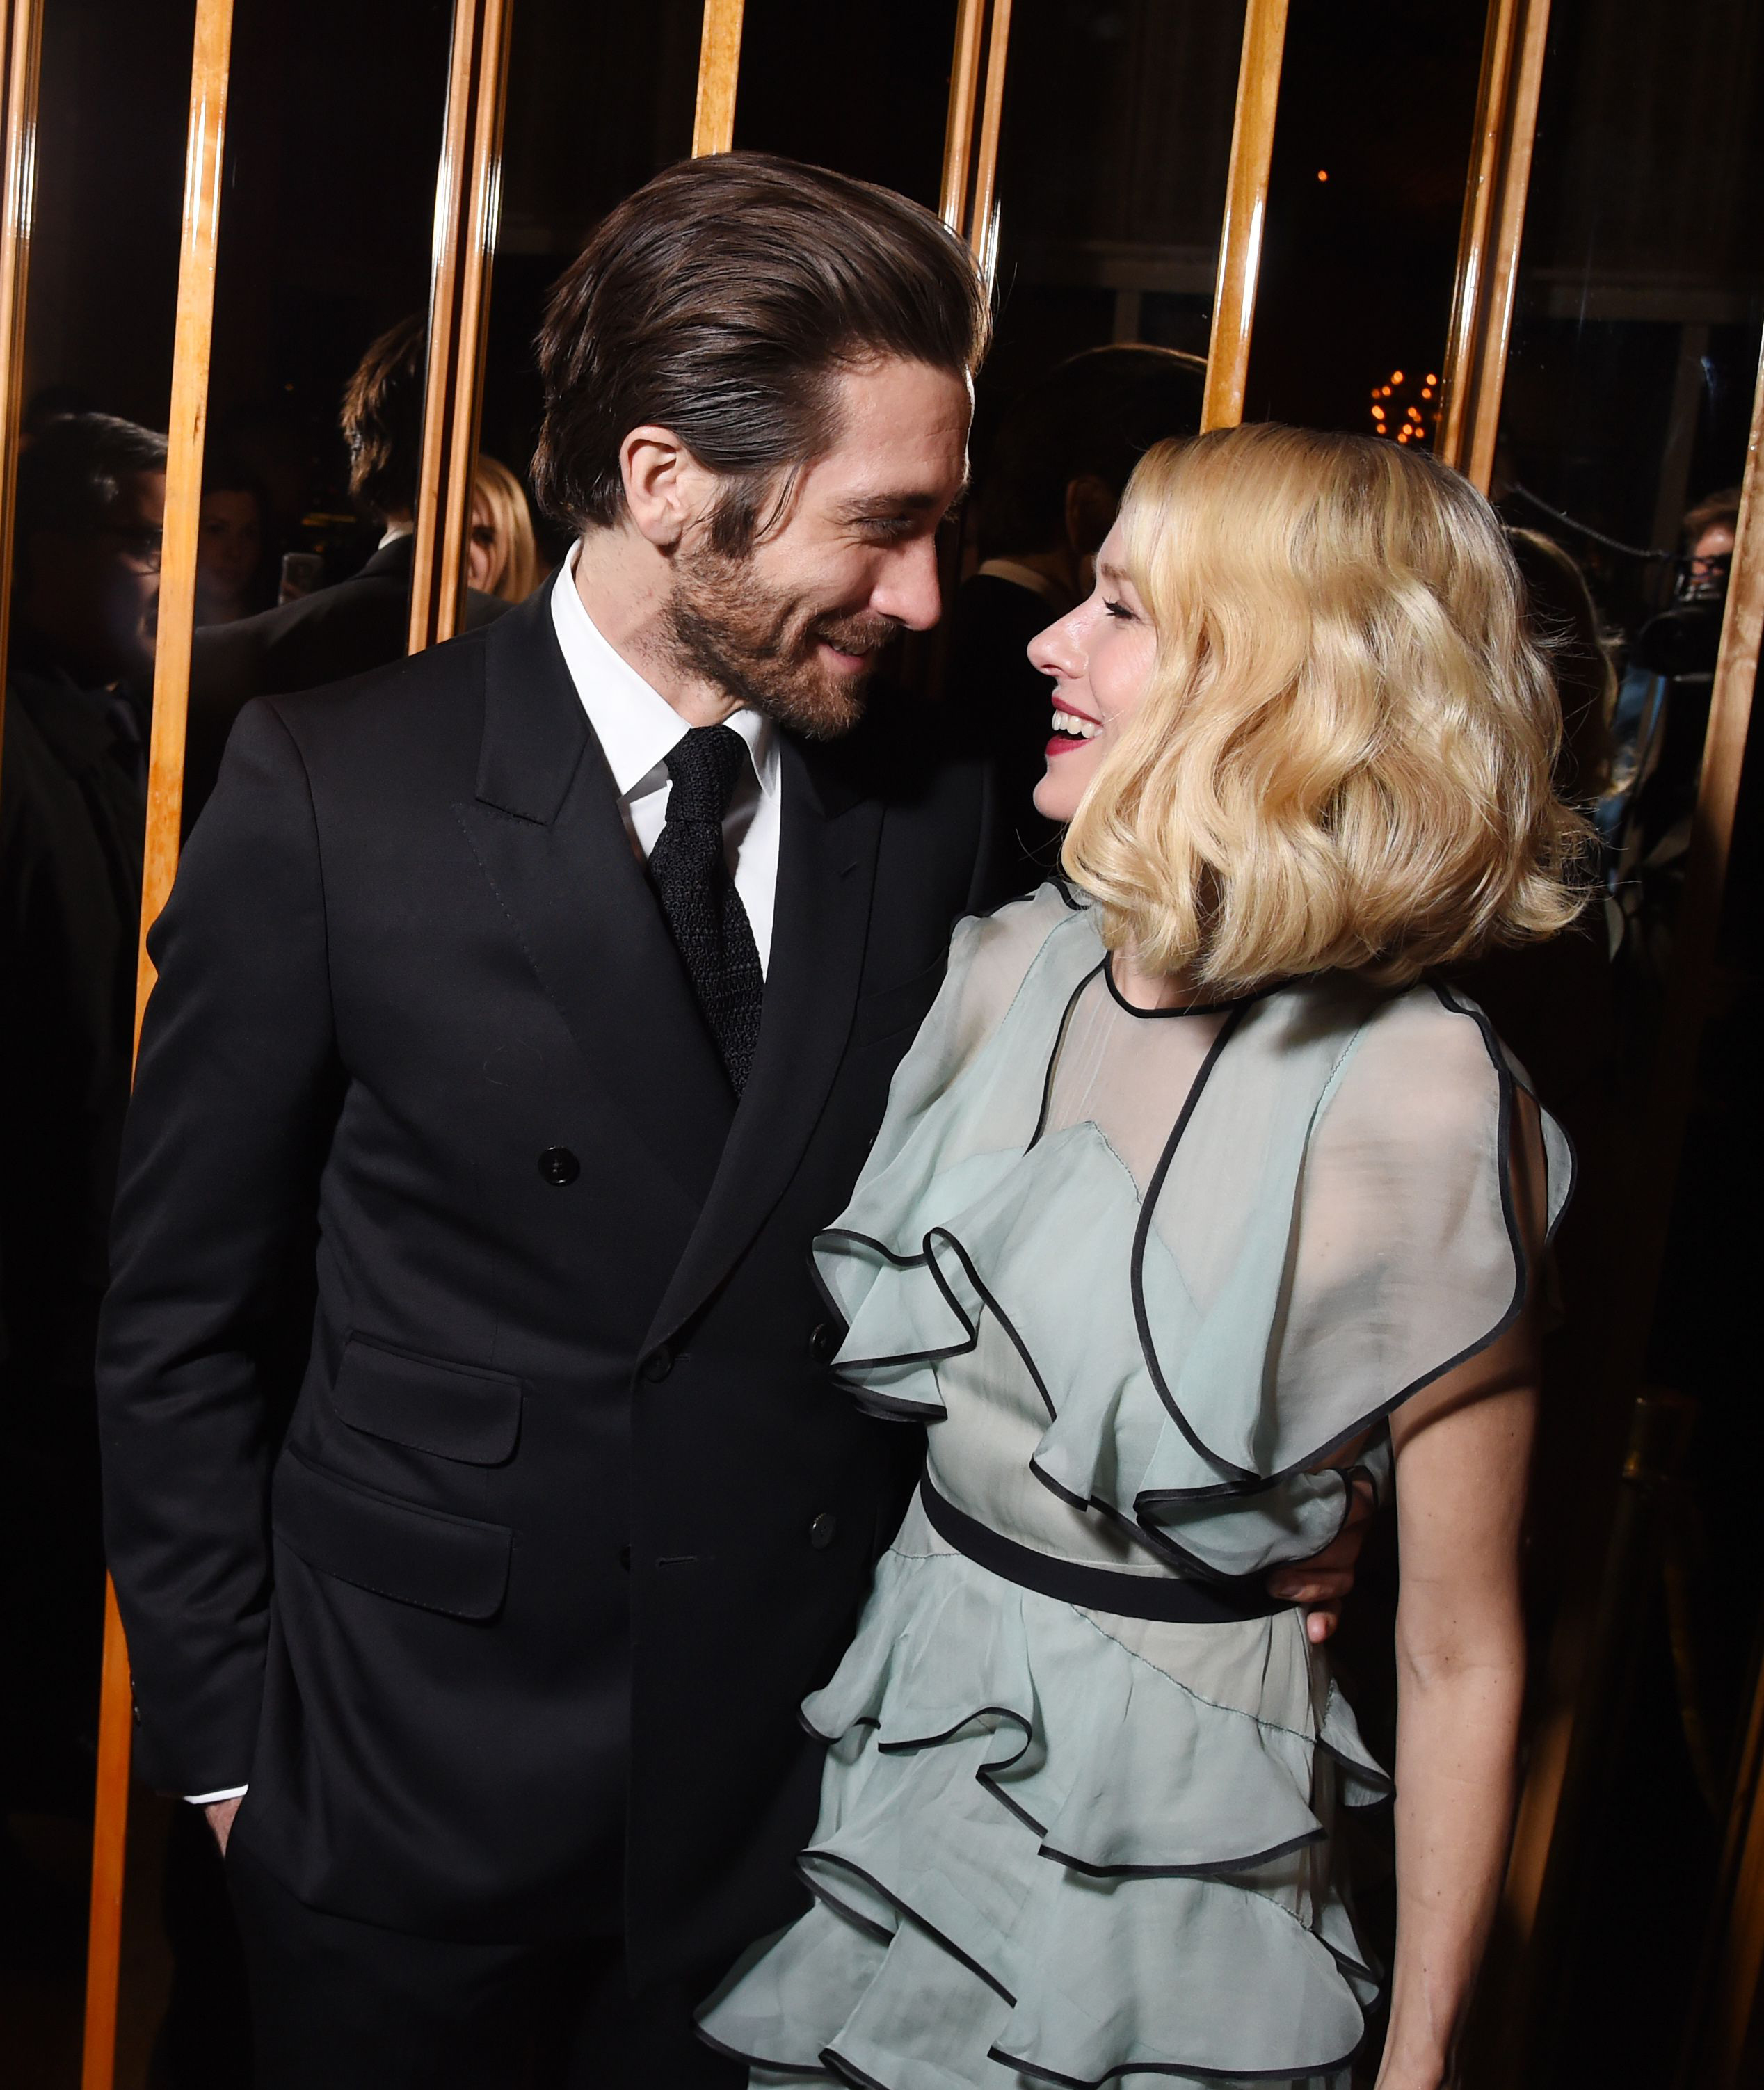 Jake Gyllenhaal and Naomi Watts at 'Demolition' film screening after party